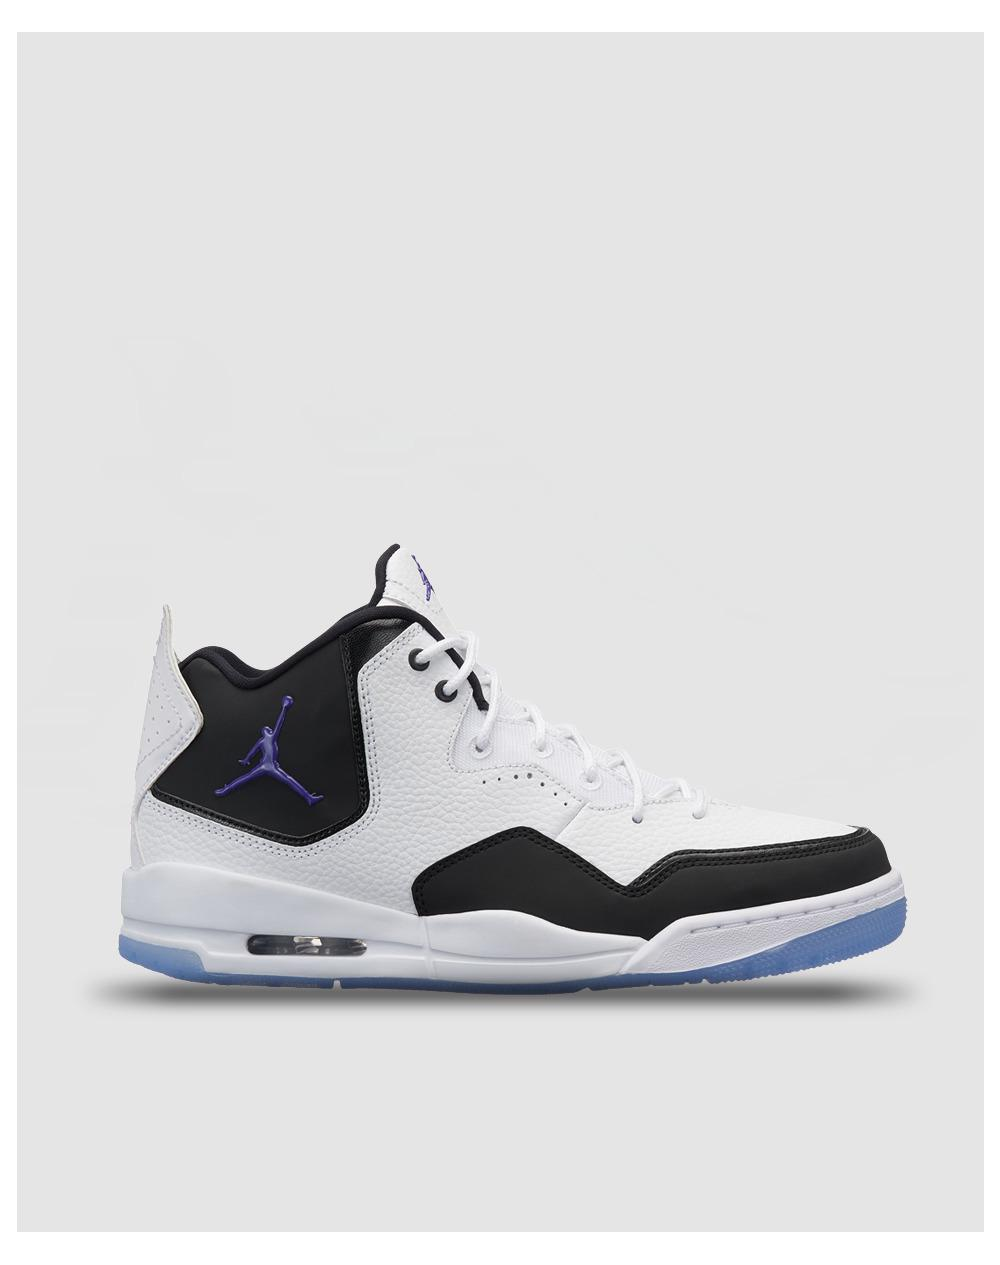 9ba9f61e448ca2 Lyst - Nike Jordan Courtside 23 Casual Trainers in White for Men